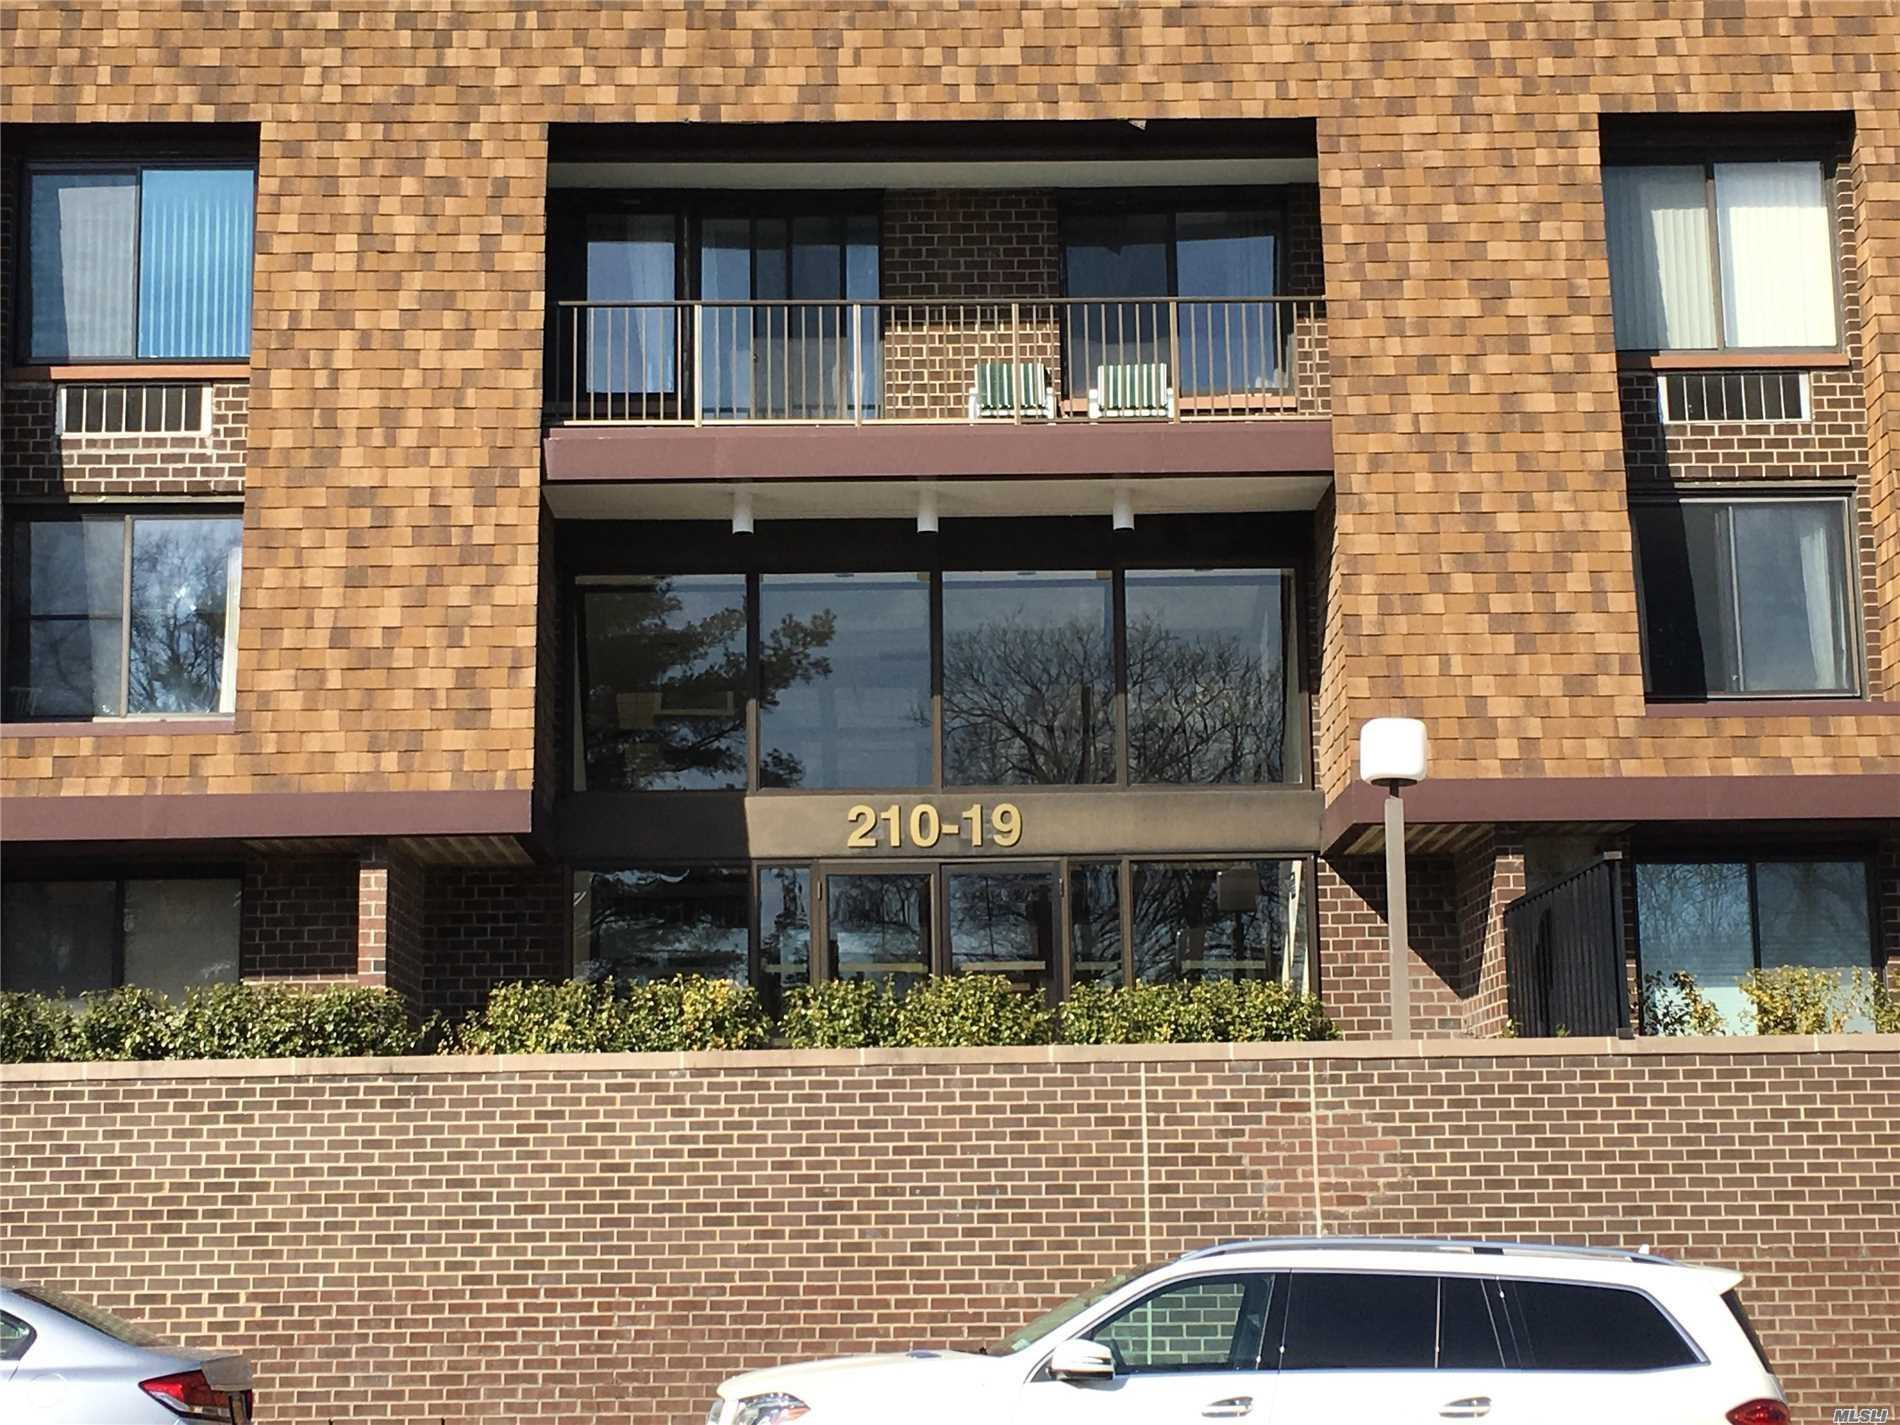 Sun Filled Southern Exposure Huge 1 Bed, Brand New Interior, New Washer And Dryer,  Indoor Parking Included, Terrace. Health Club With Pool, Basket Ball, Racket Ball, Yoga Classes And Etc. Close To Shops And Transportation.